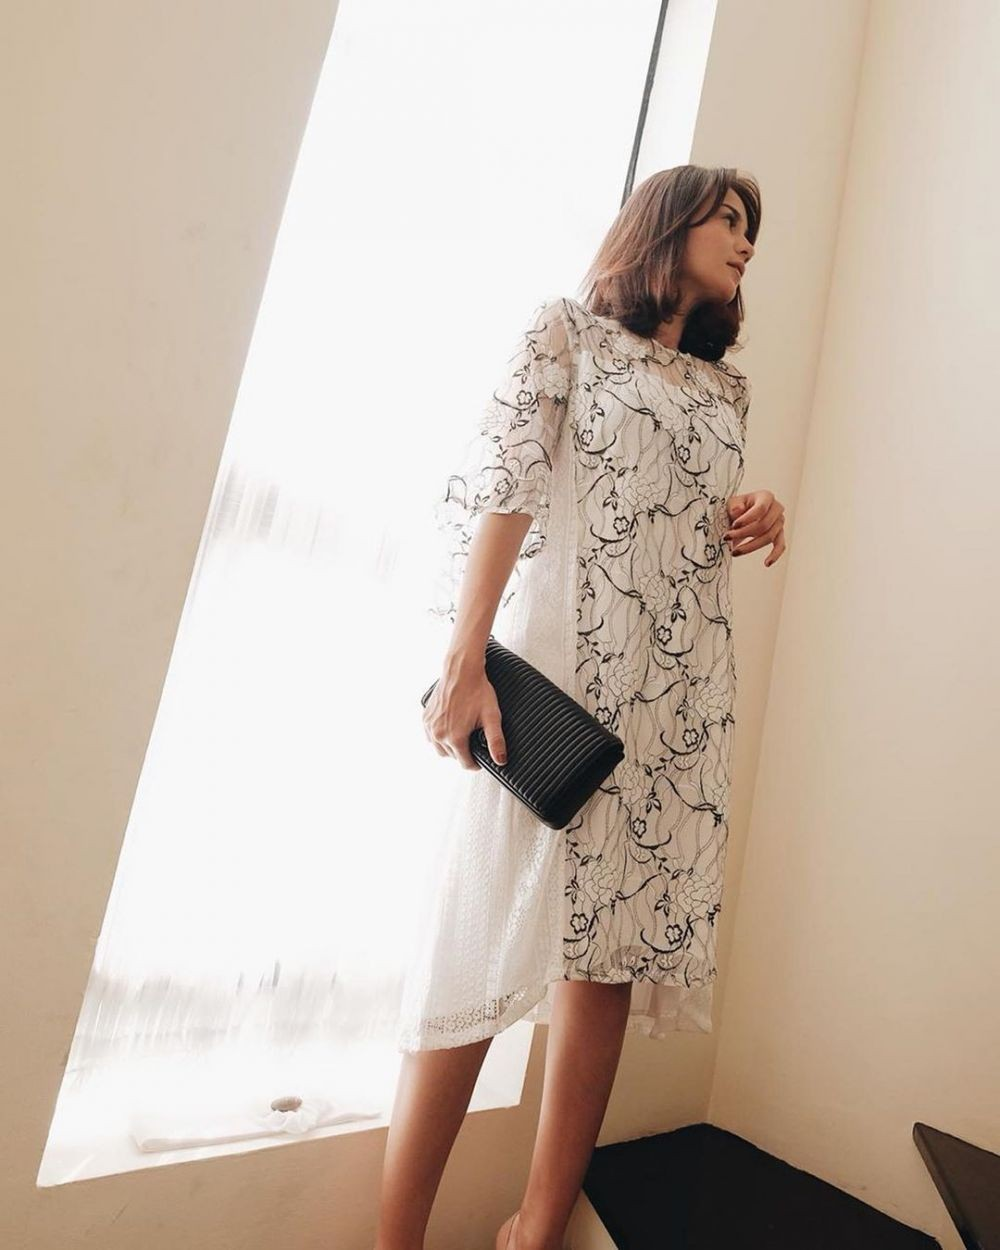 10 Inspirasi Styling Dress Putih untuk Party ala Seleb & Influencer